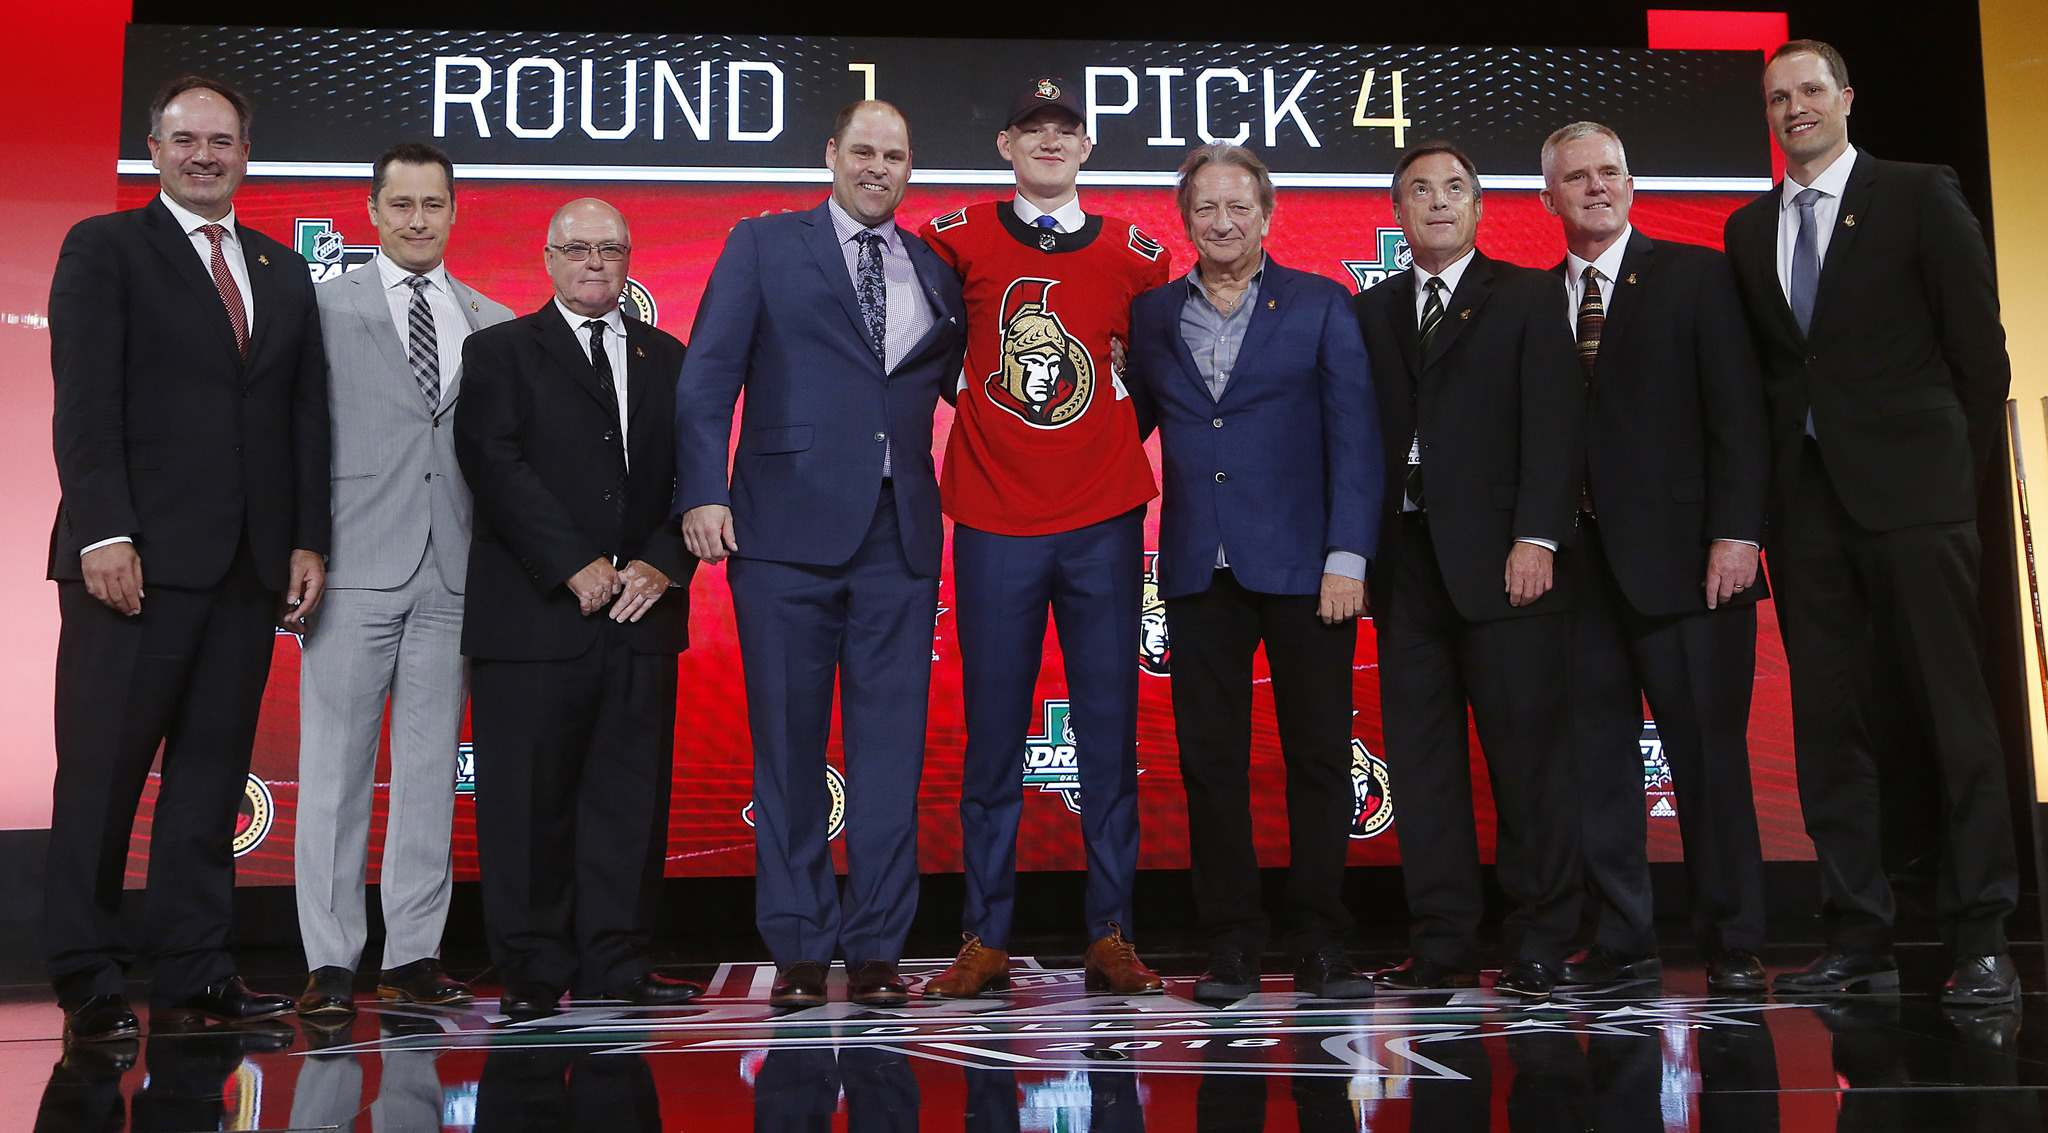 Michael Ainsworth / The Associated Press</p><p>Brady Tkachuk (centre) was selected fourth overall by the Ottawa Senators at the NHL draft in Dallas on Friday. Brady follows his brother, Matthew, who was drafted sixth overall by the Calgary Flames in 2016.</p></p>